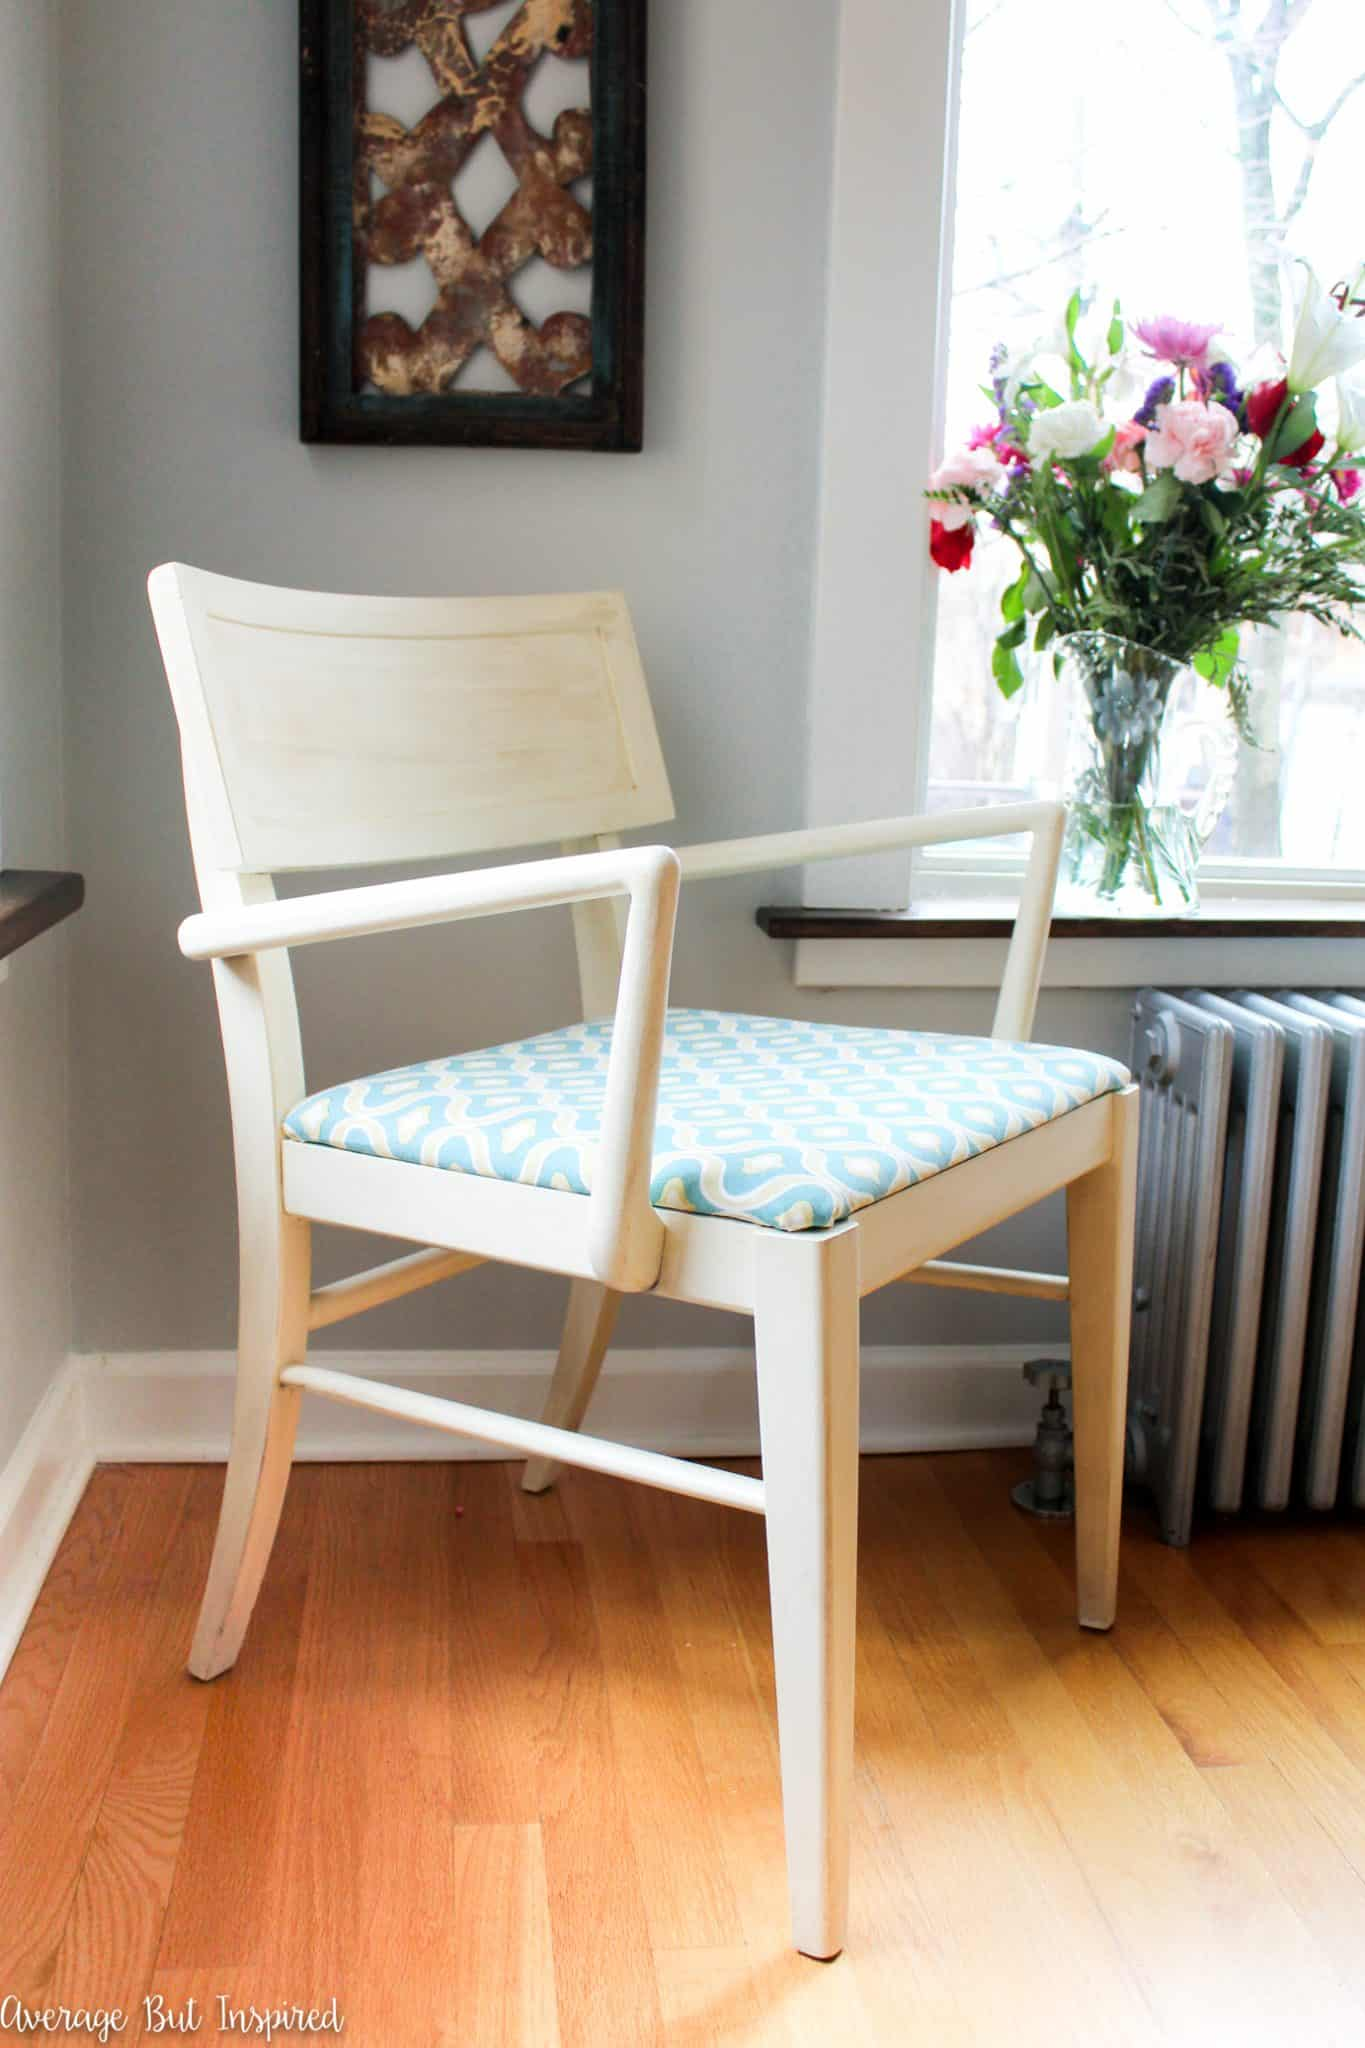 A set of four mid-century dining chairs is given a beautiful makeover in this post! Check out all the before and after photos!